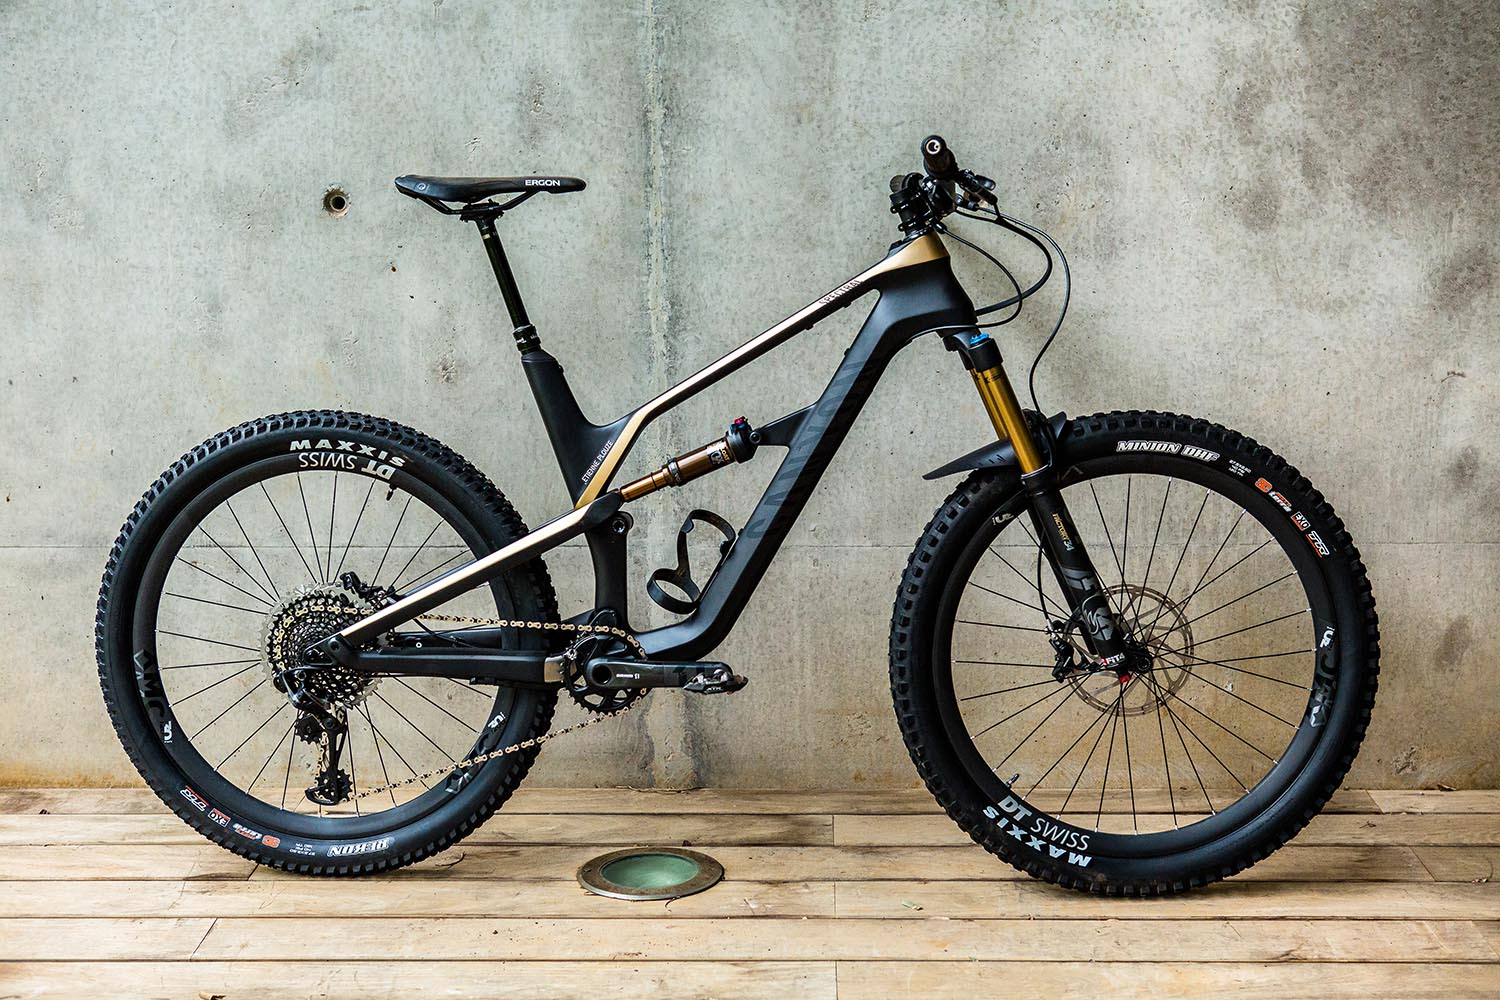 Our test model the Spectral CF 9.0 SL